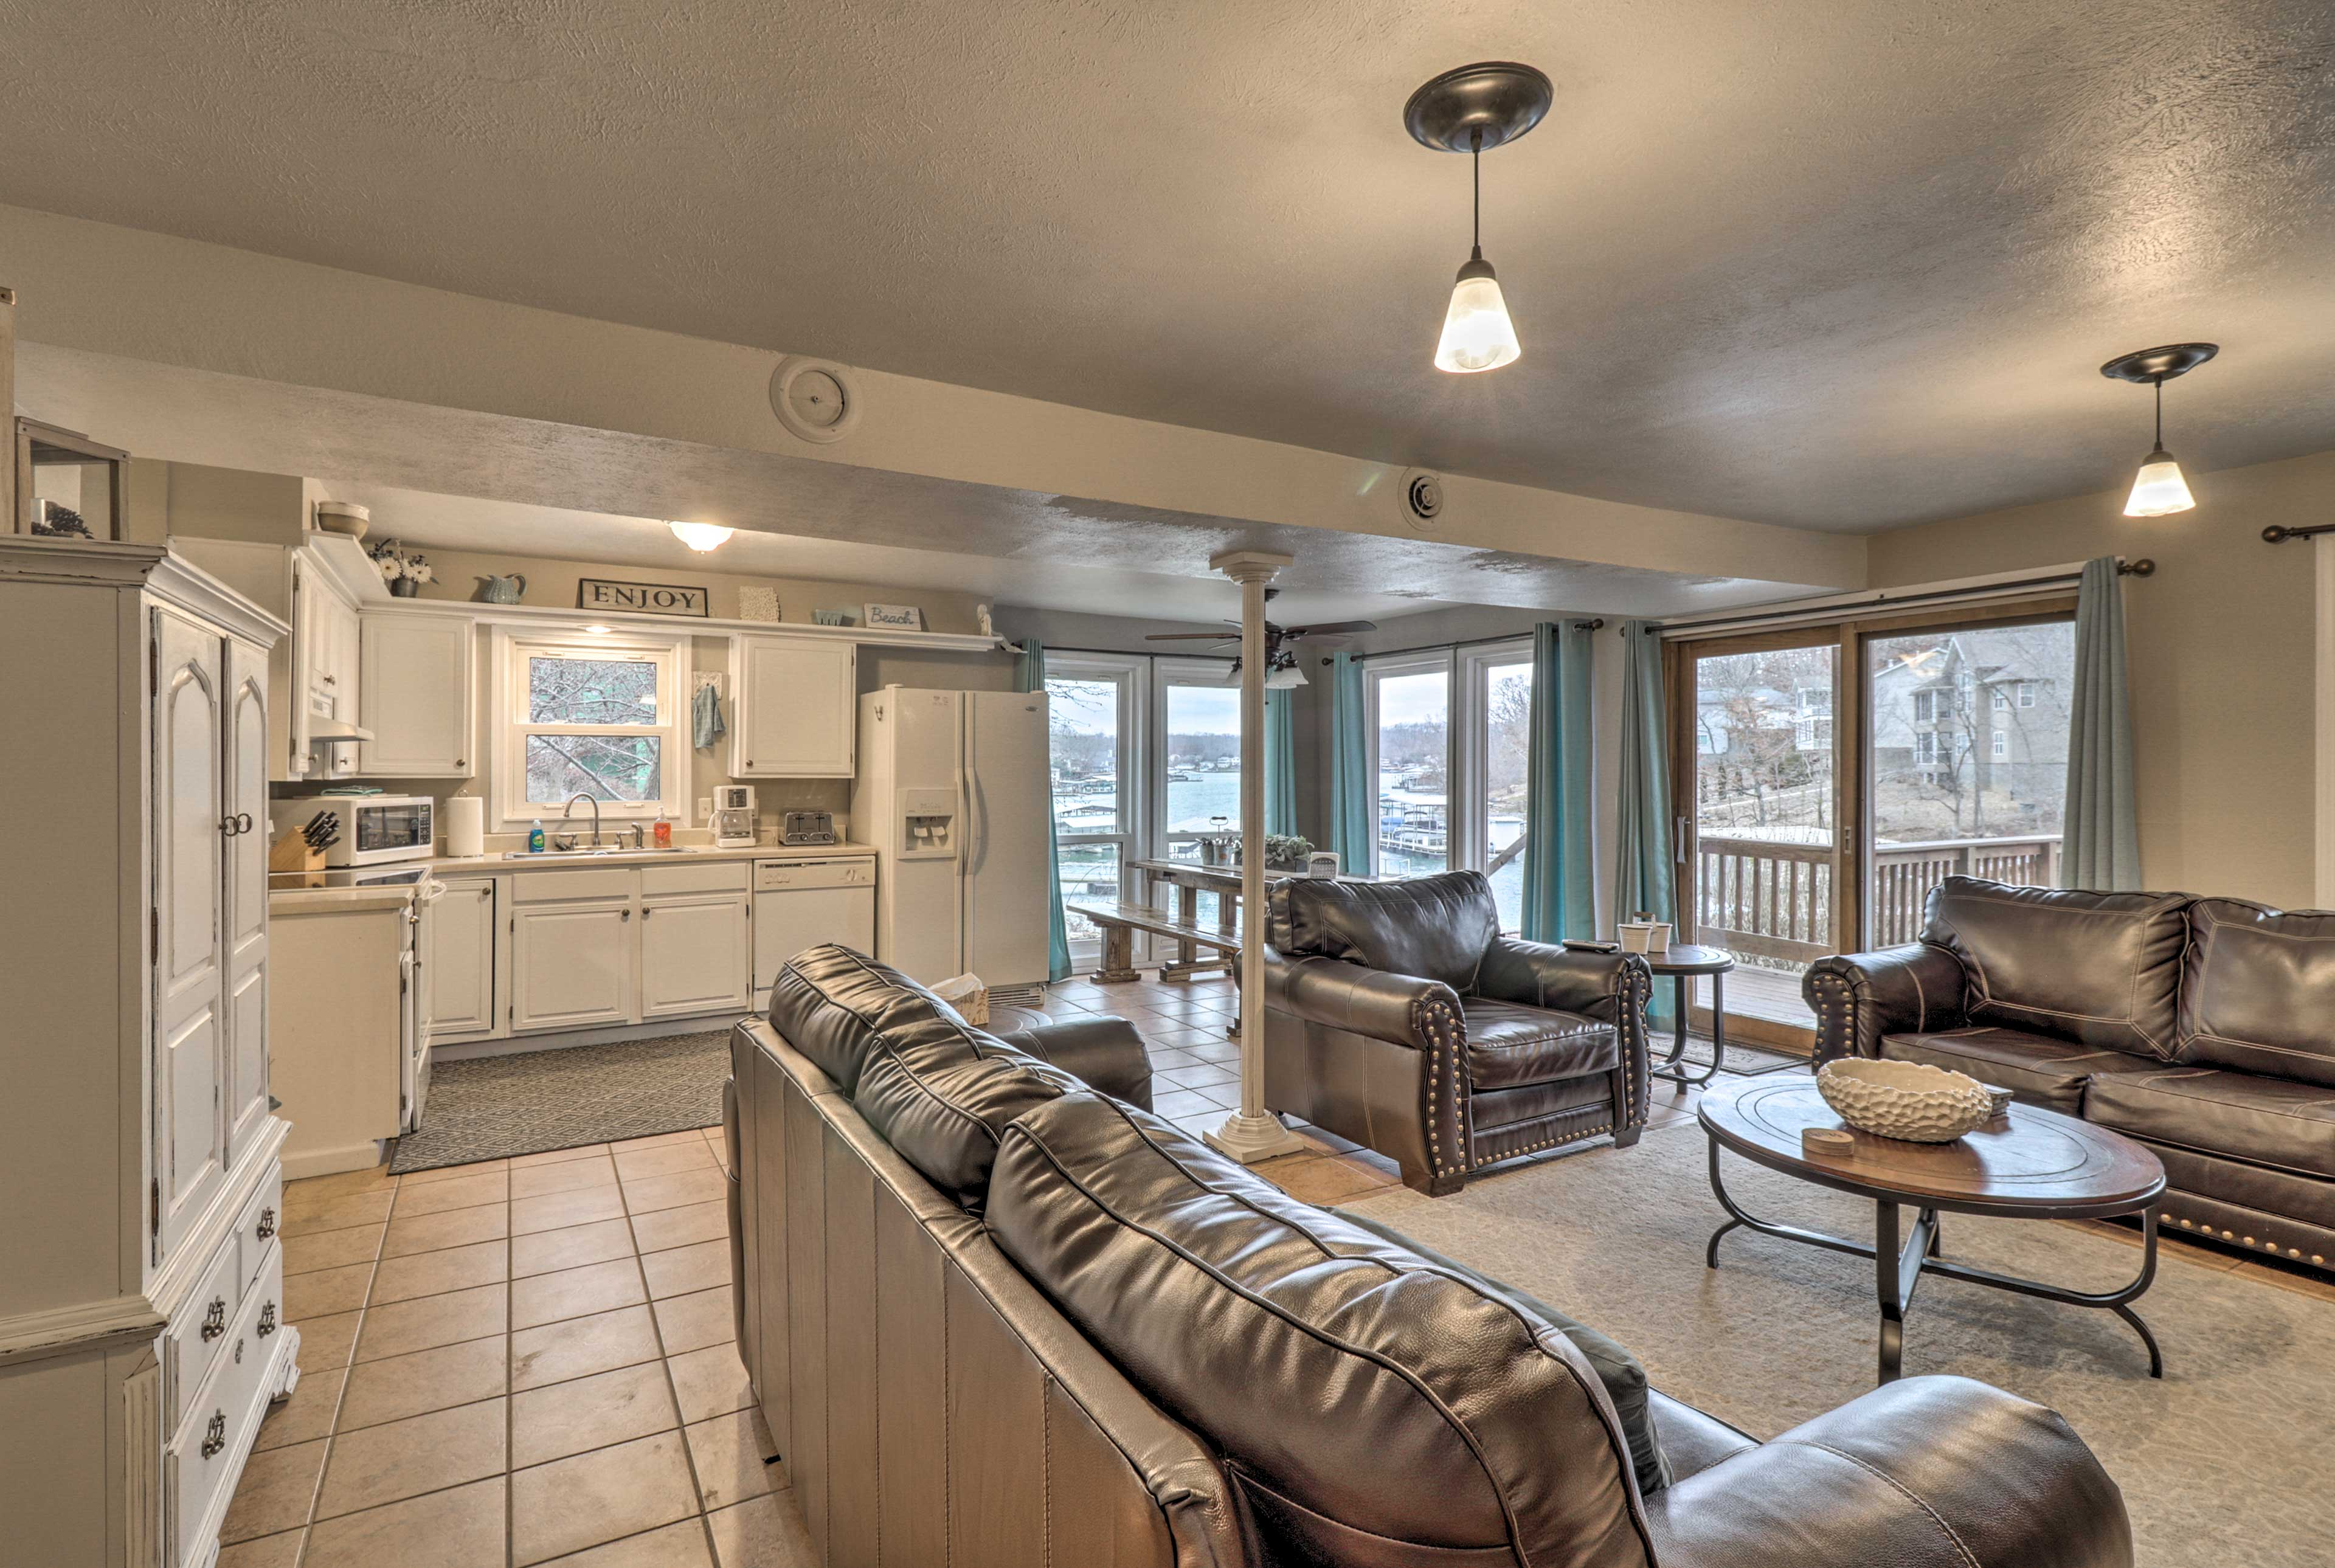 The living room shares an open-concept layout with the kitchen.